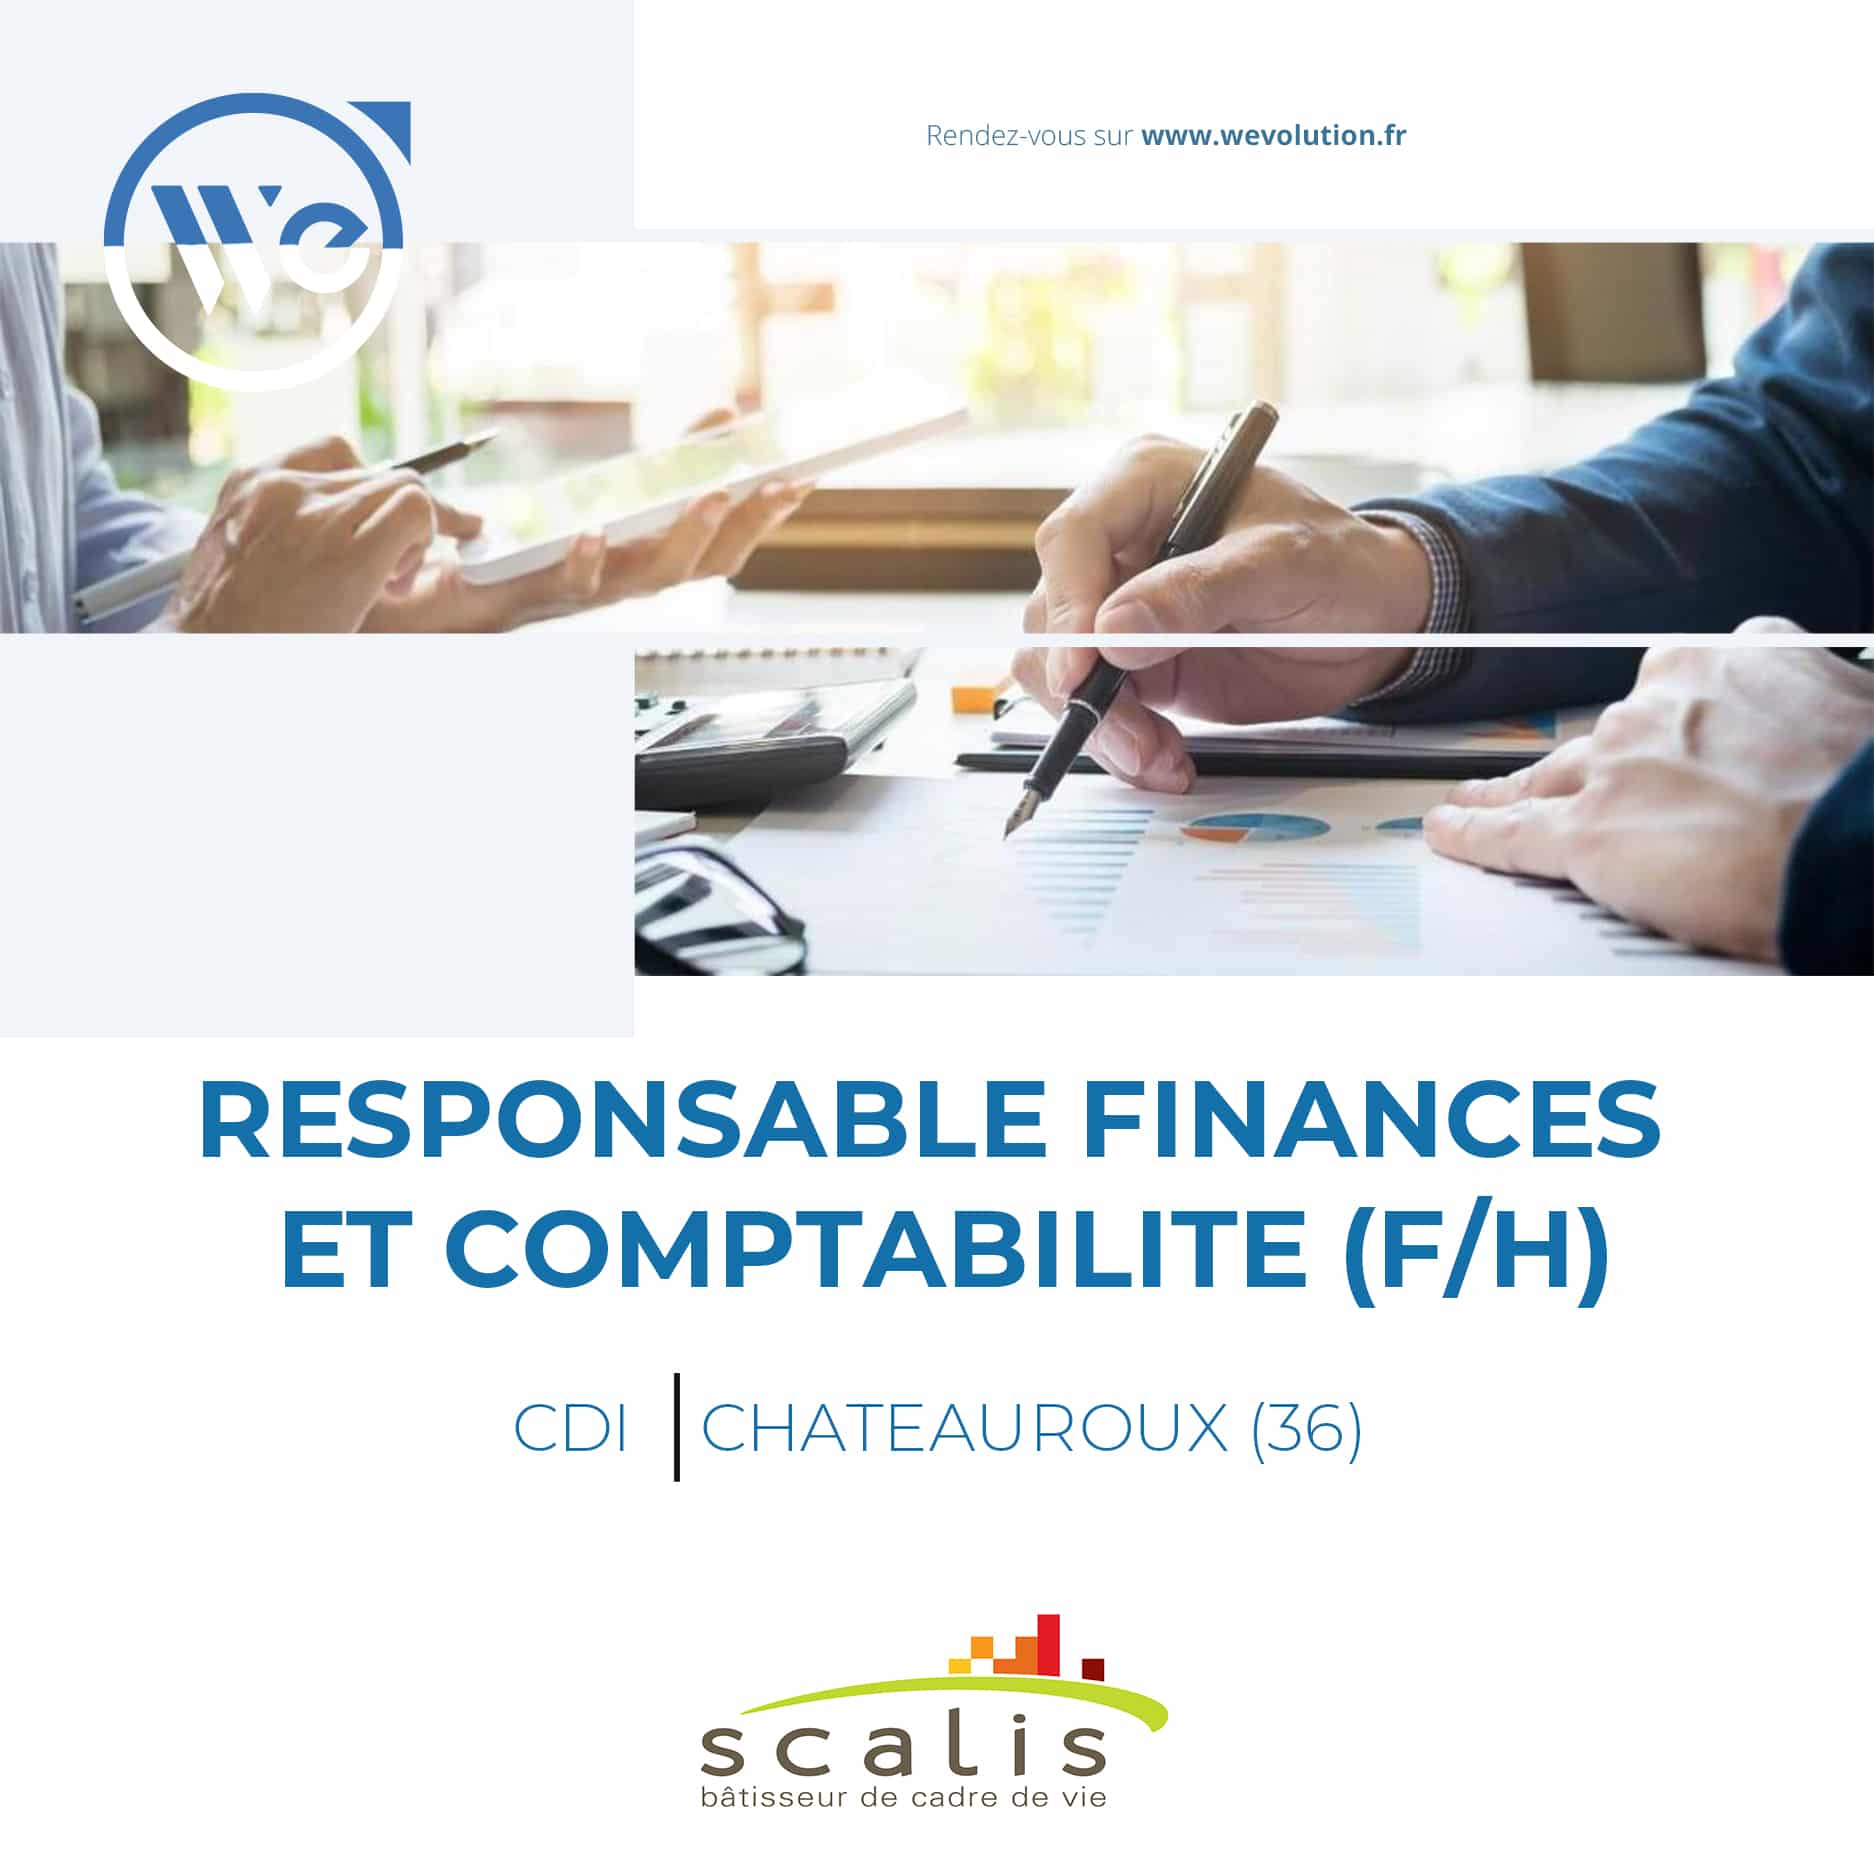 RESPONSABLE FINANCES ET COMPTABILITE – scalis